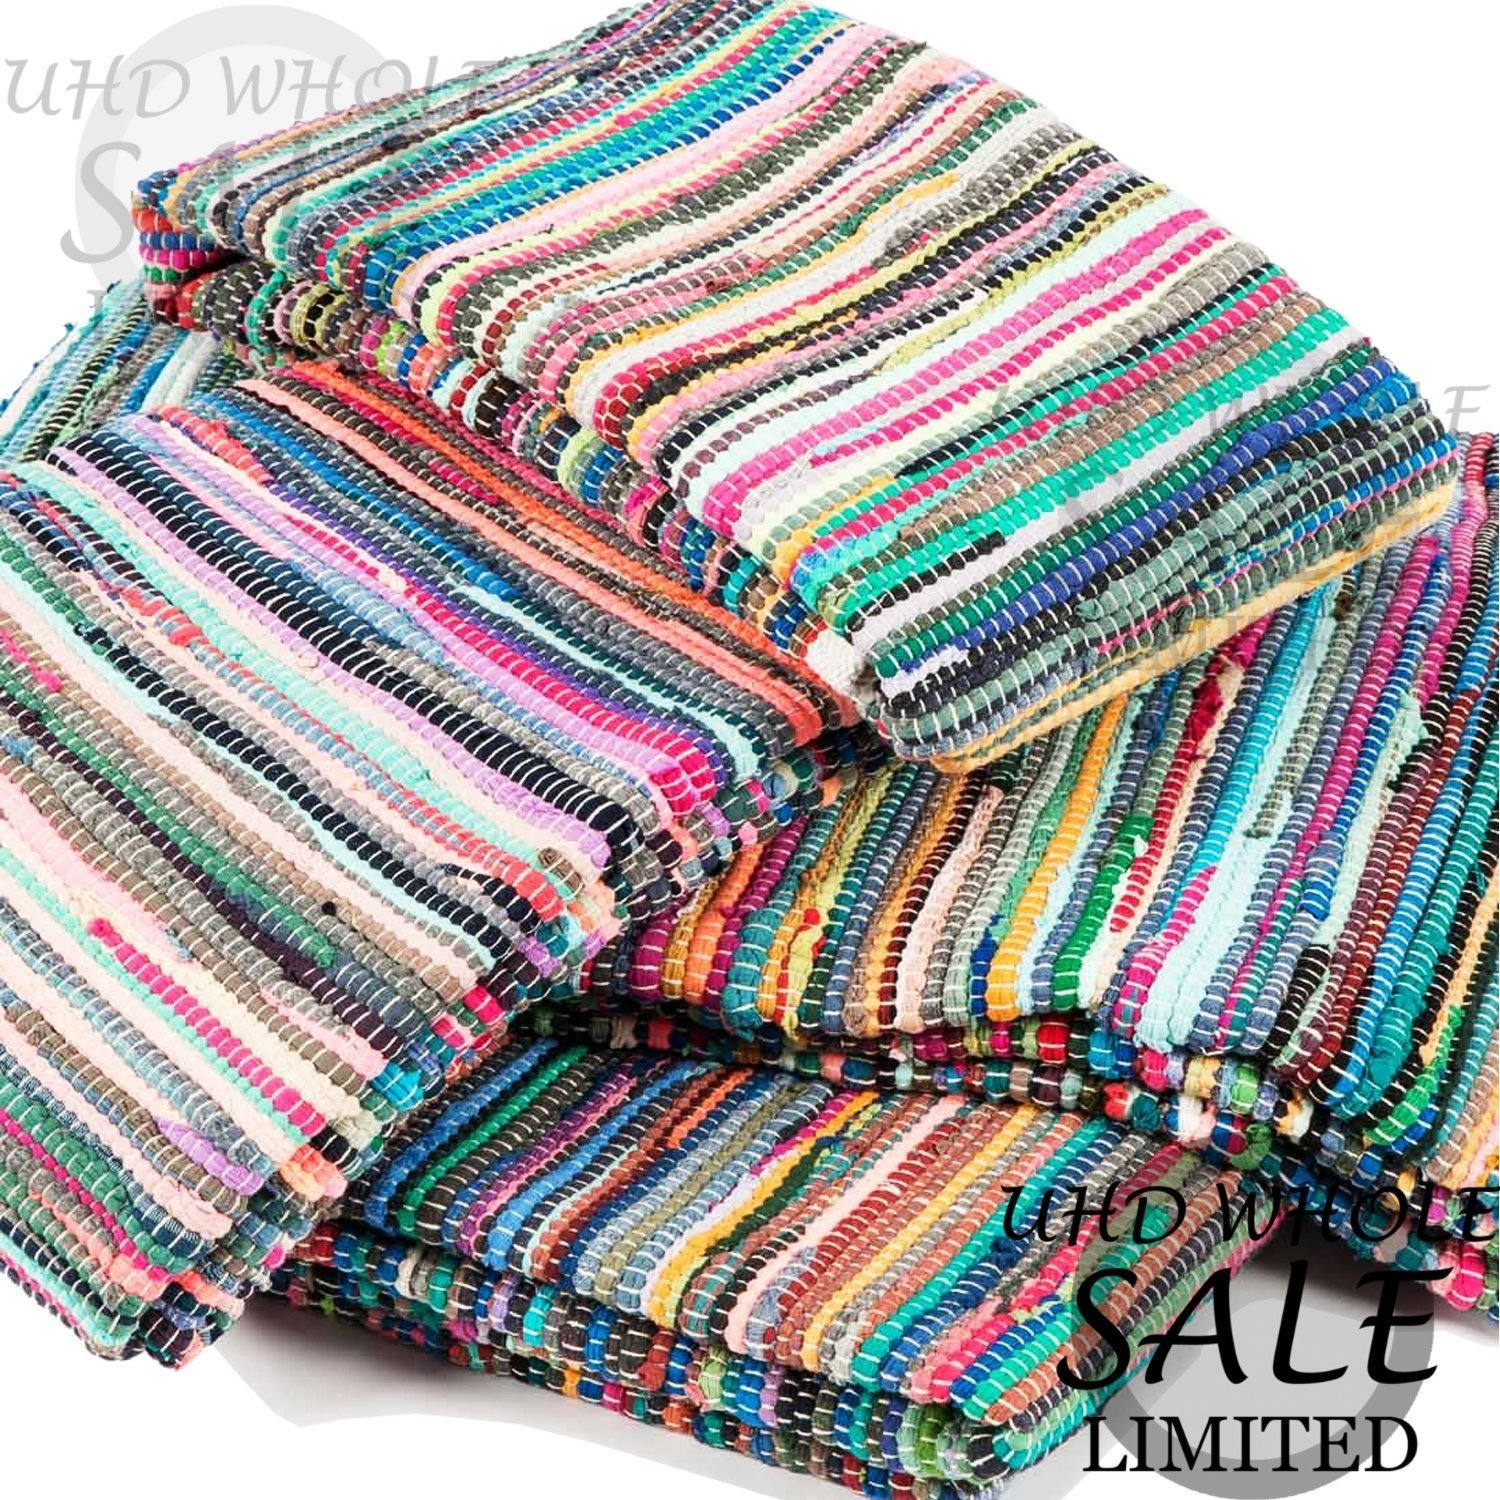 FB FunkyBuys® Fair Trade Large Small Multi Coloured Fringed Chindi Rag Rug Mat Carpet Runner - Choose from over Various Sizes! (50 x 80 cm)